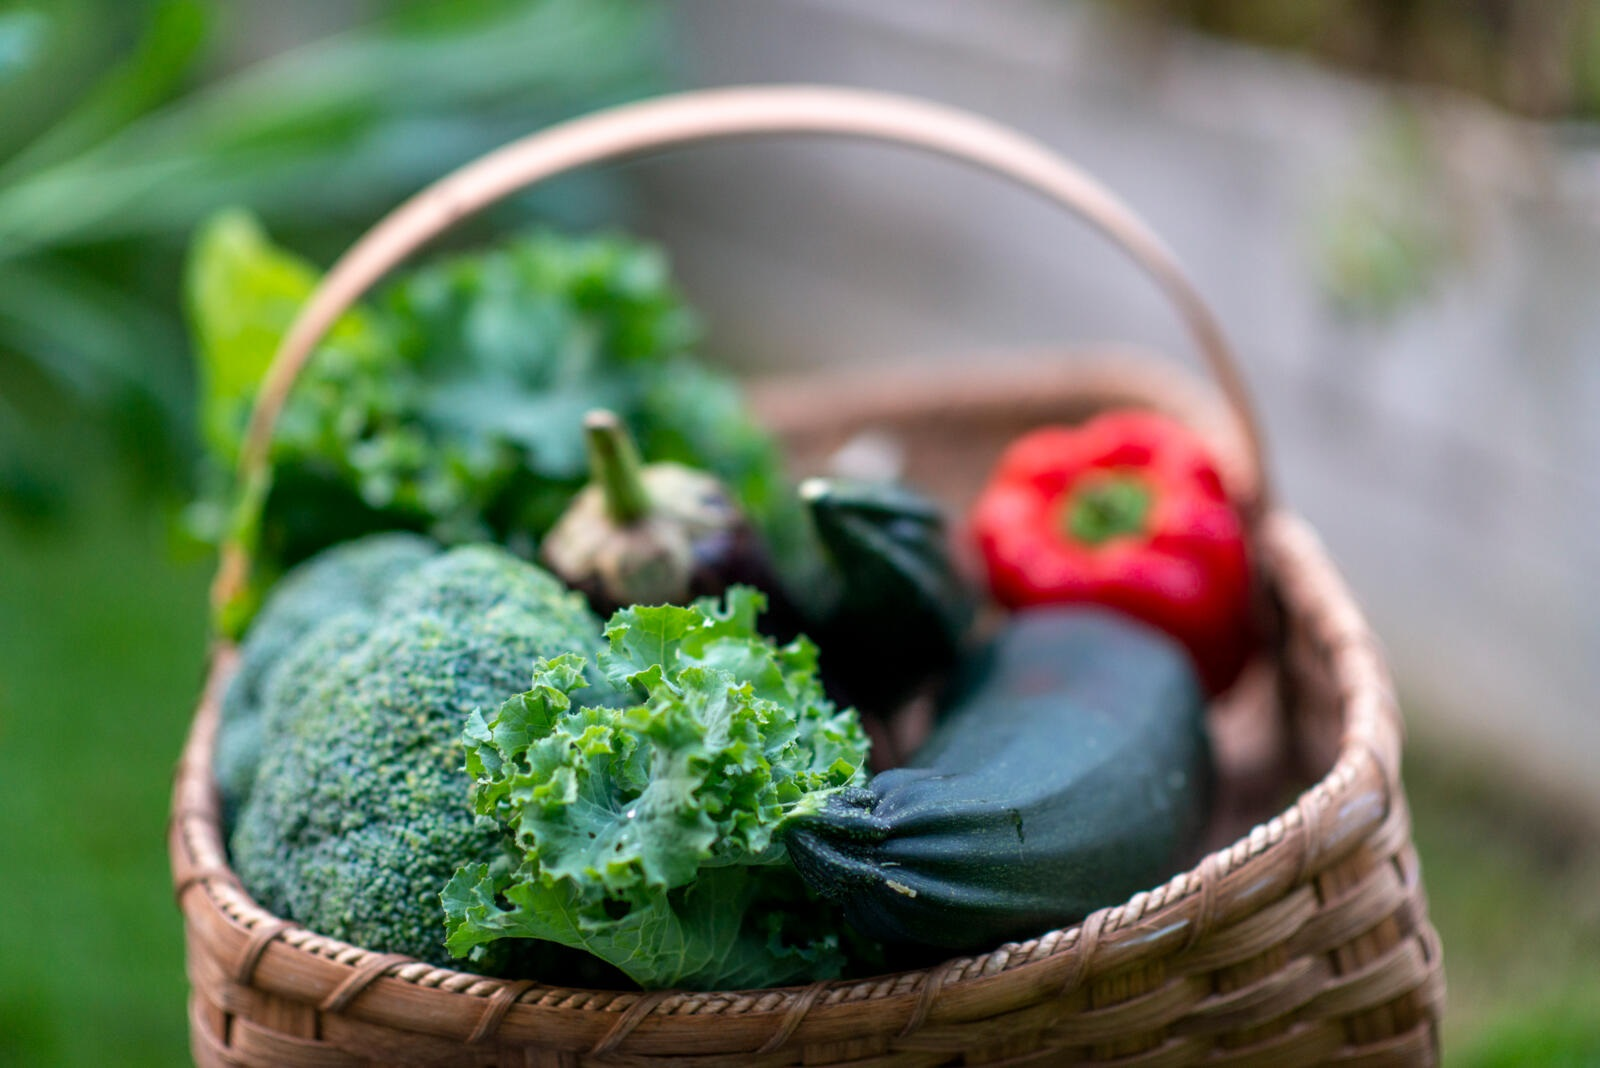 homegrown vegetables in a basket - broccoli, zucchini, eggplant, peppers, leafy greens